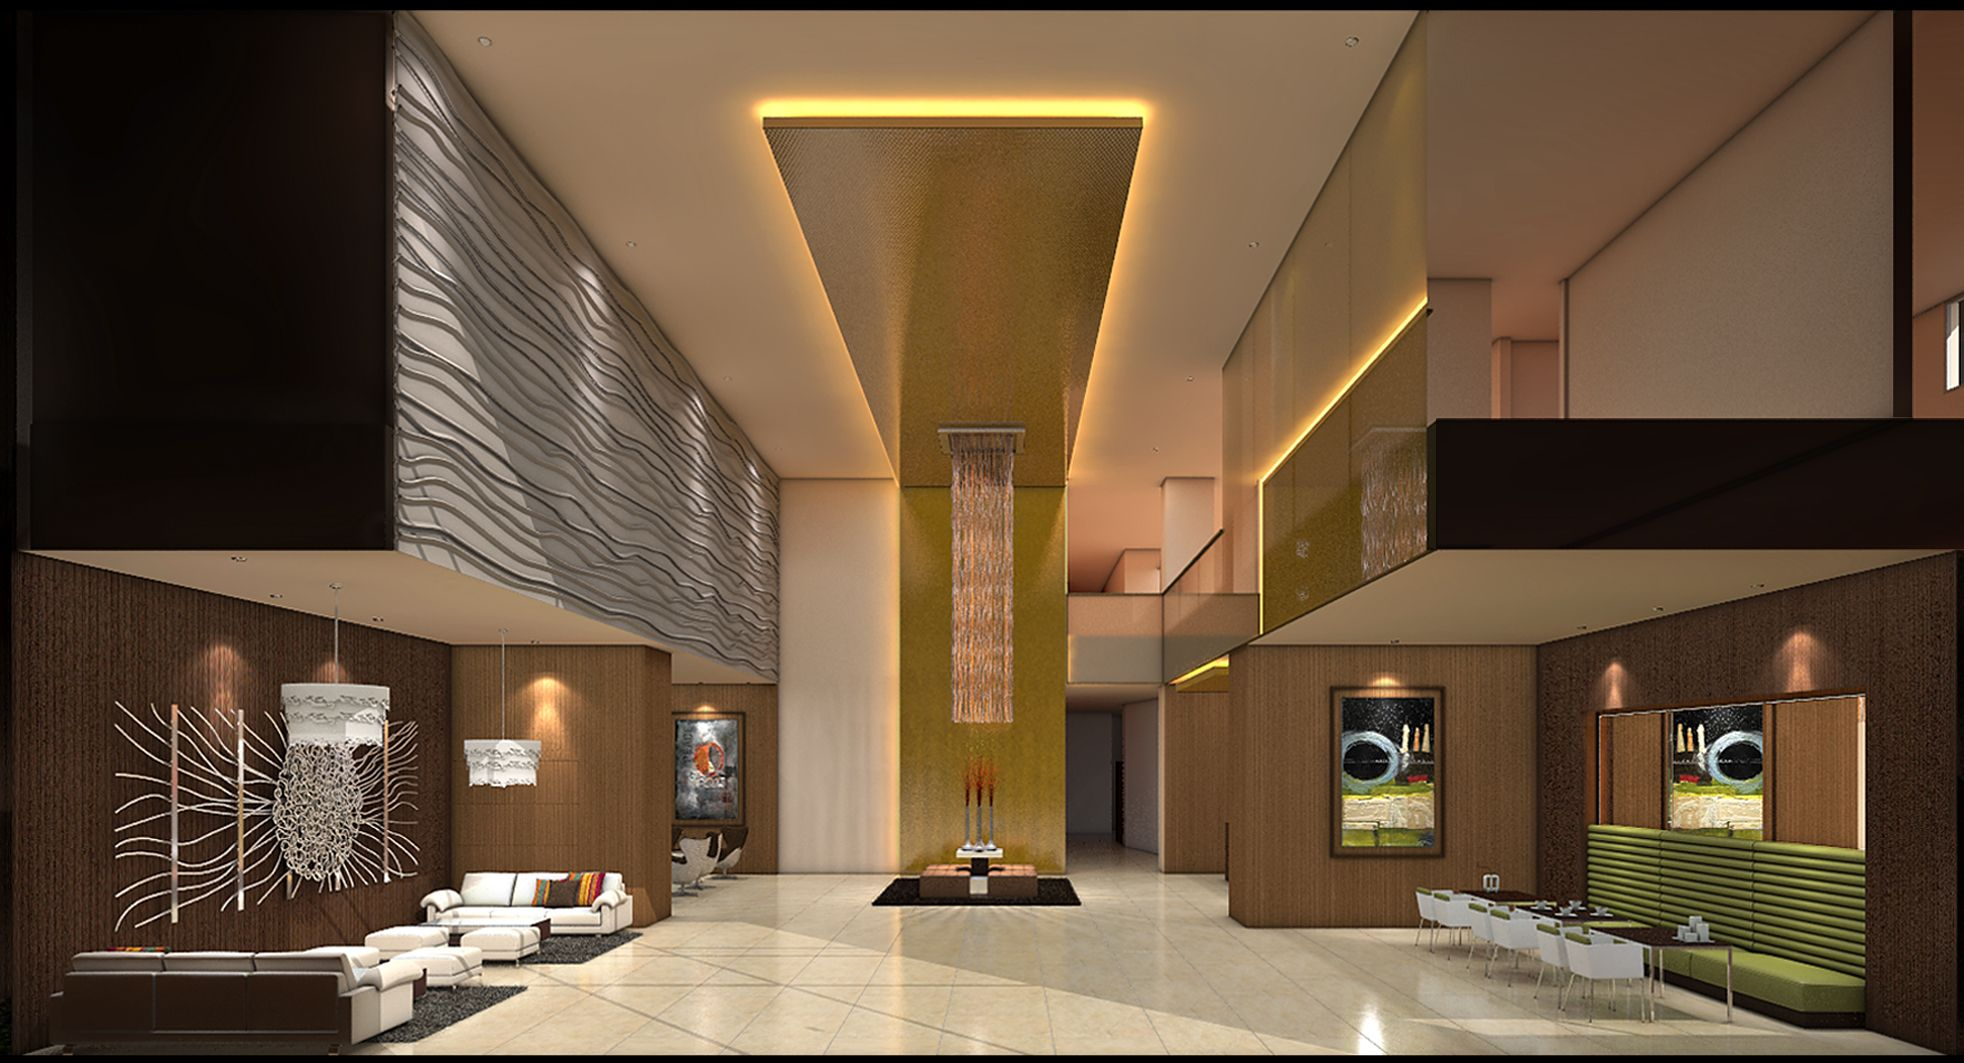 Hotel lobby design draft 2 my work my designs for Design hotels